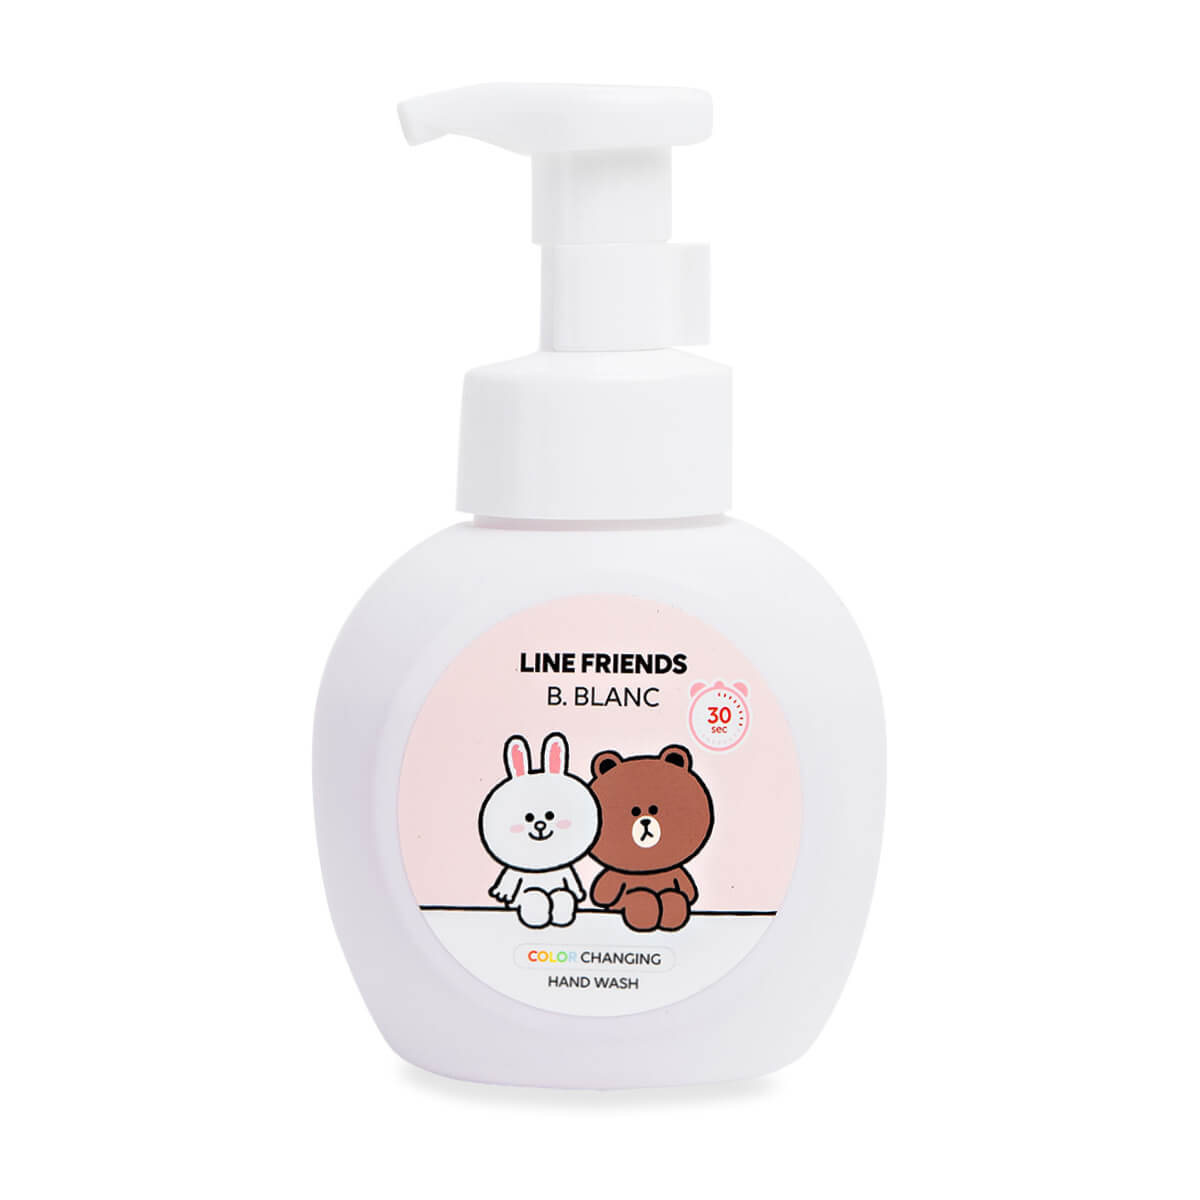 LINE FRIENDS X B. BLANC Color-Changing Hand Soap